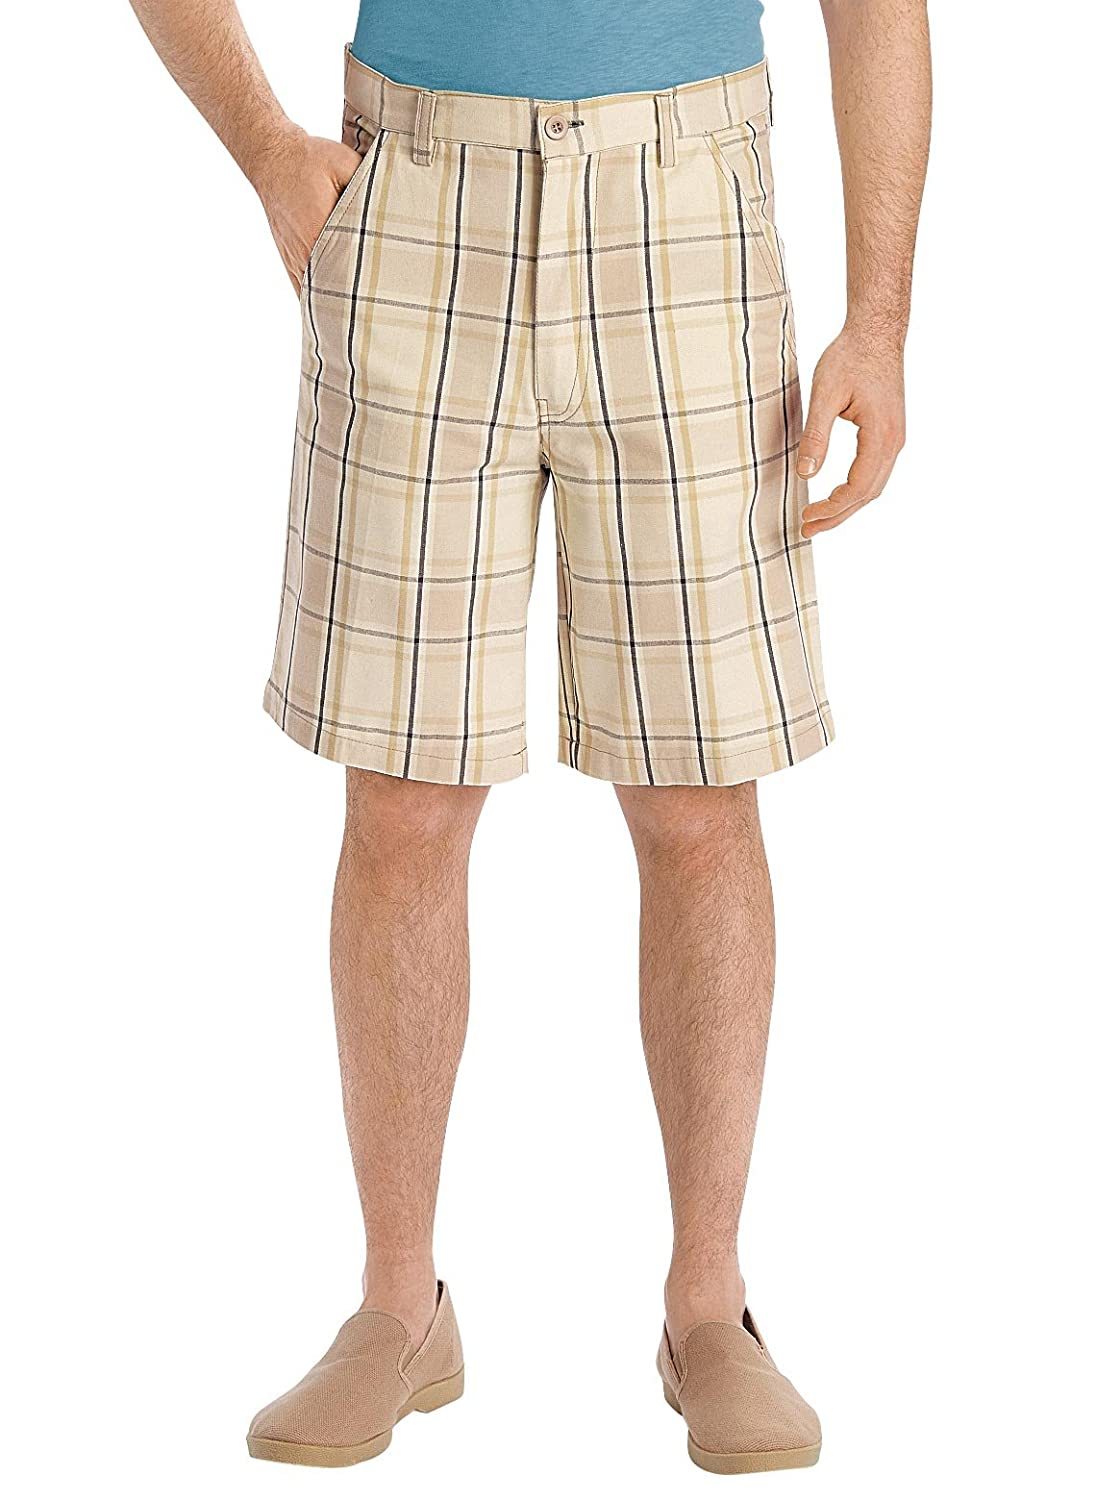 Men's Vintage Style Pants, Trousers, Jeans, Overalls Carol Wright Gifts Mens Plaid Shorts $7.99 AT vintagedancer.com